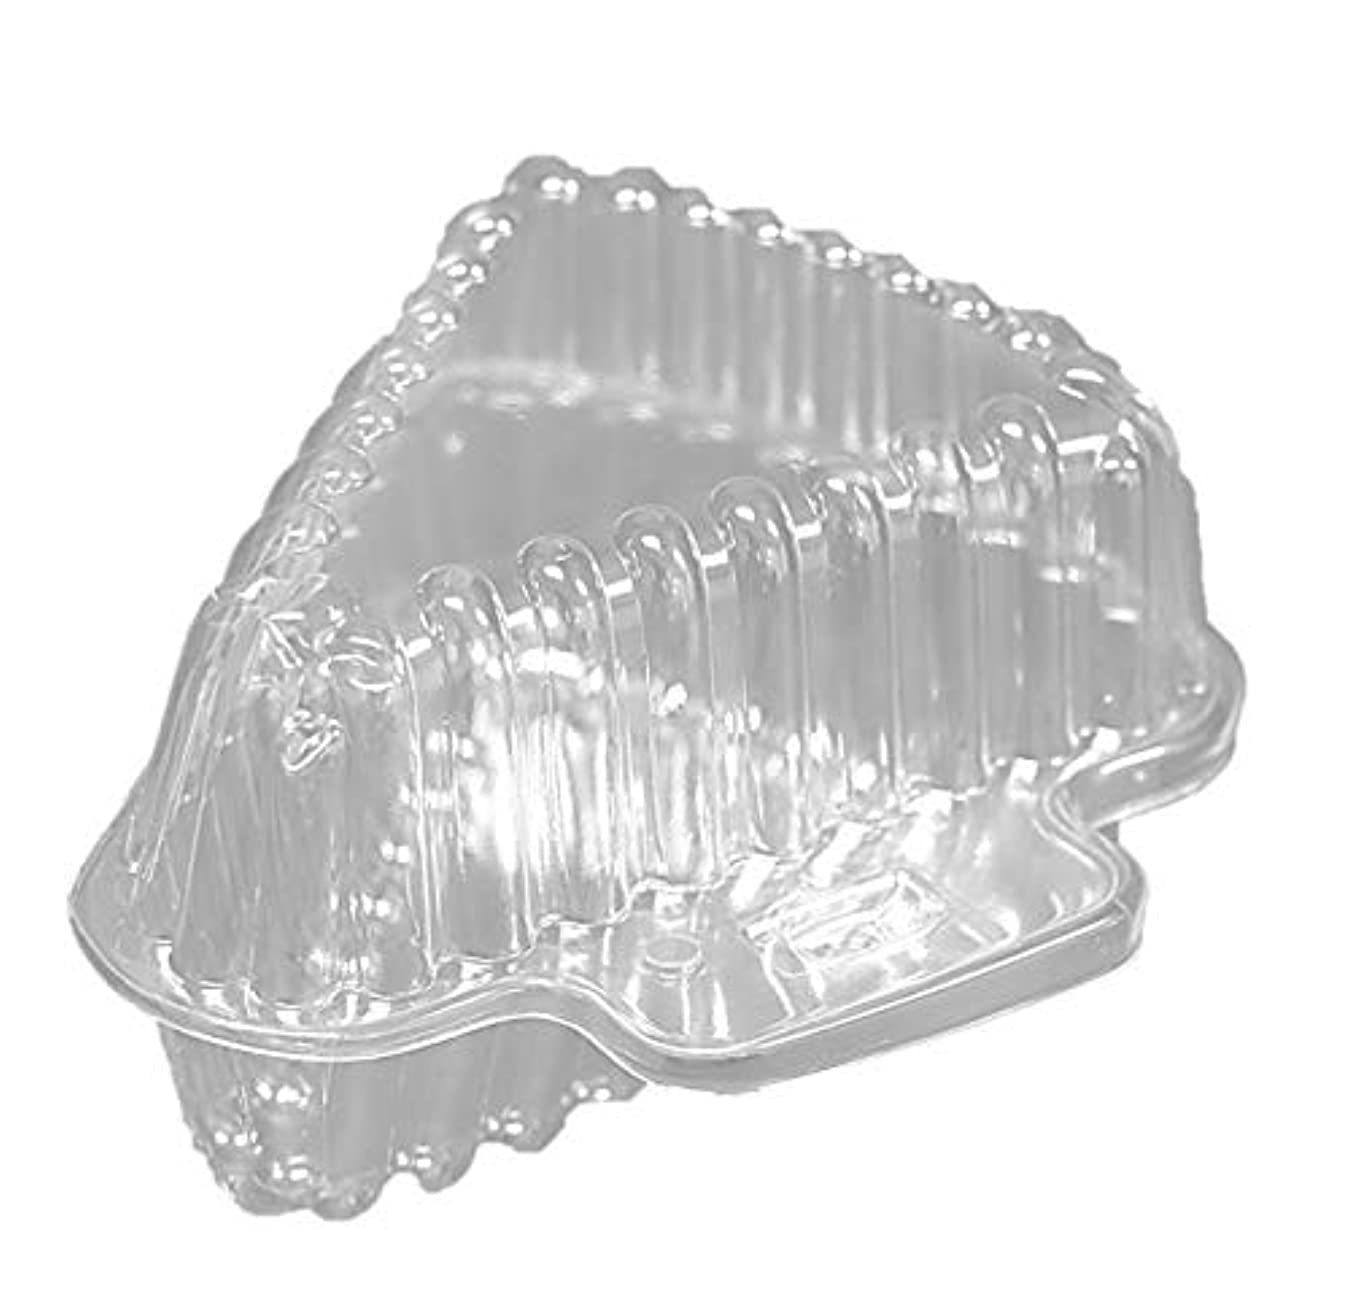 25 Clear Plastic Pie Cheesecake Hinged Holders Disposable Wedge Cake Slice Containers.